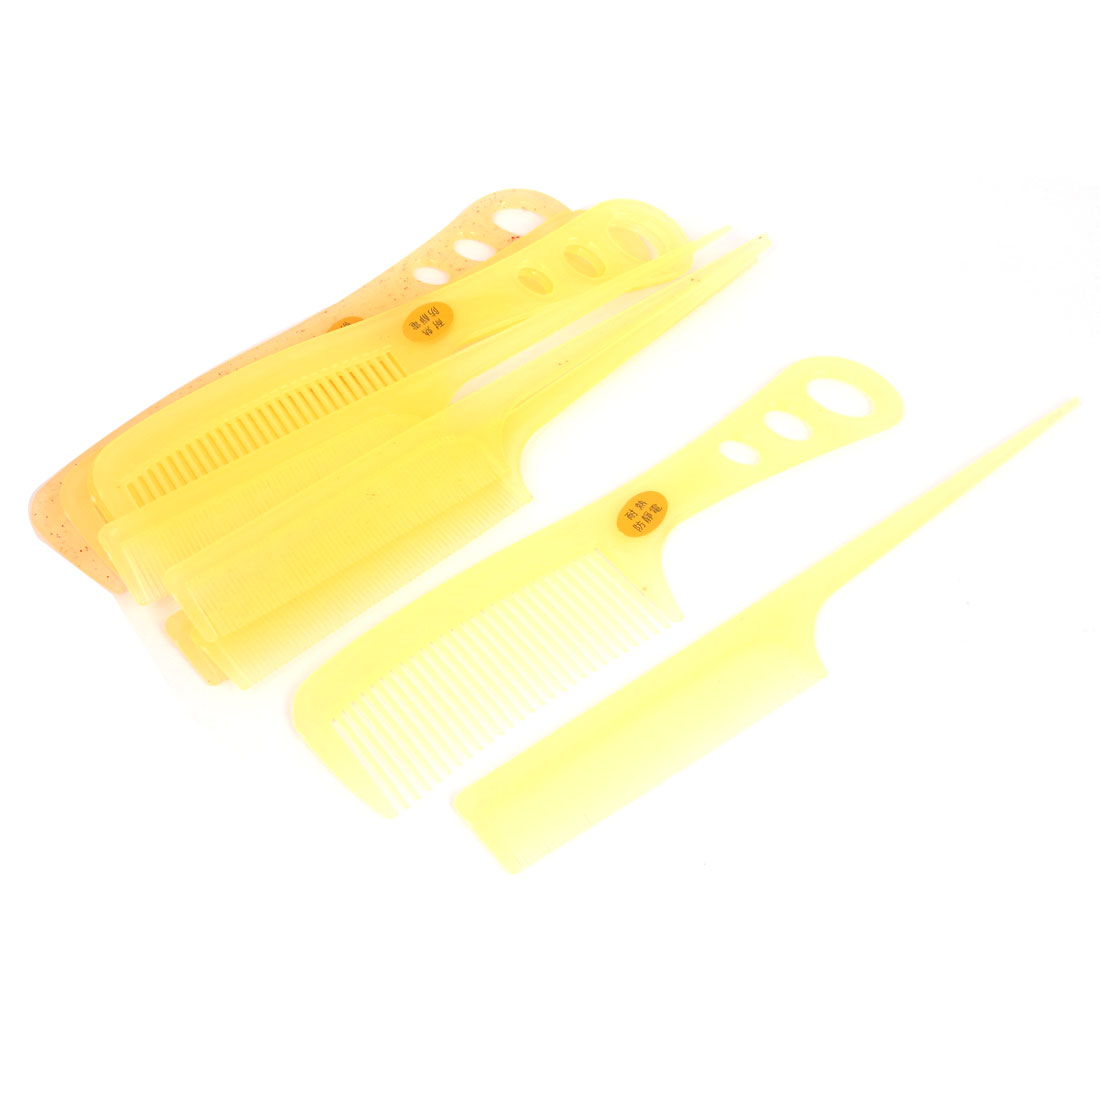 Hairdressing Plastic Anti Static Hair Styling Combs Light Yellow 10 in 1